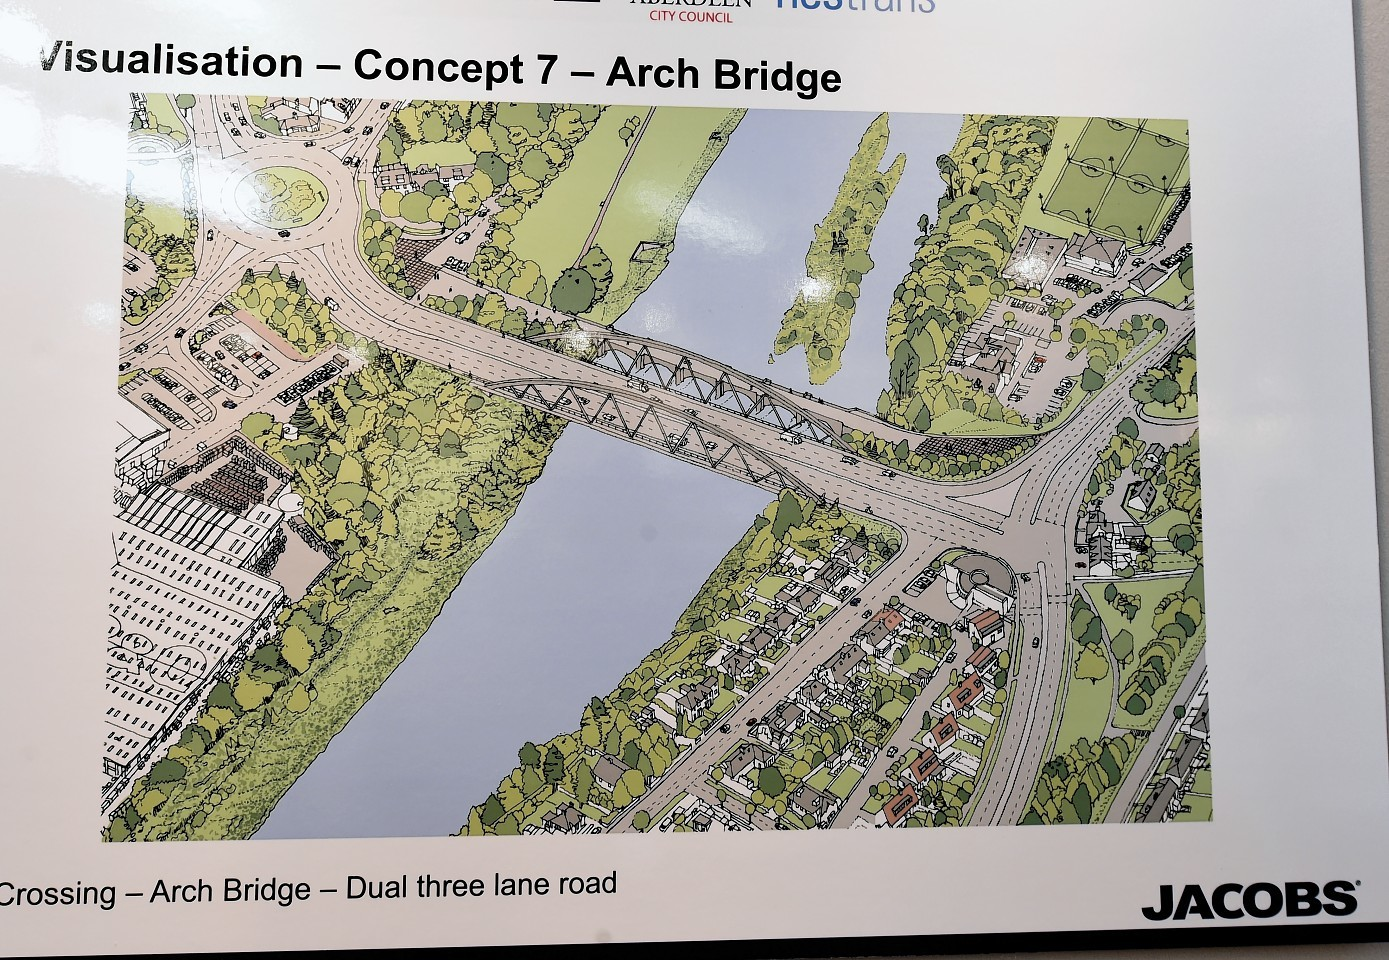 Residents were given the chance to have their say on the bridge plans.